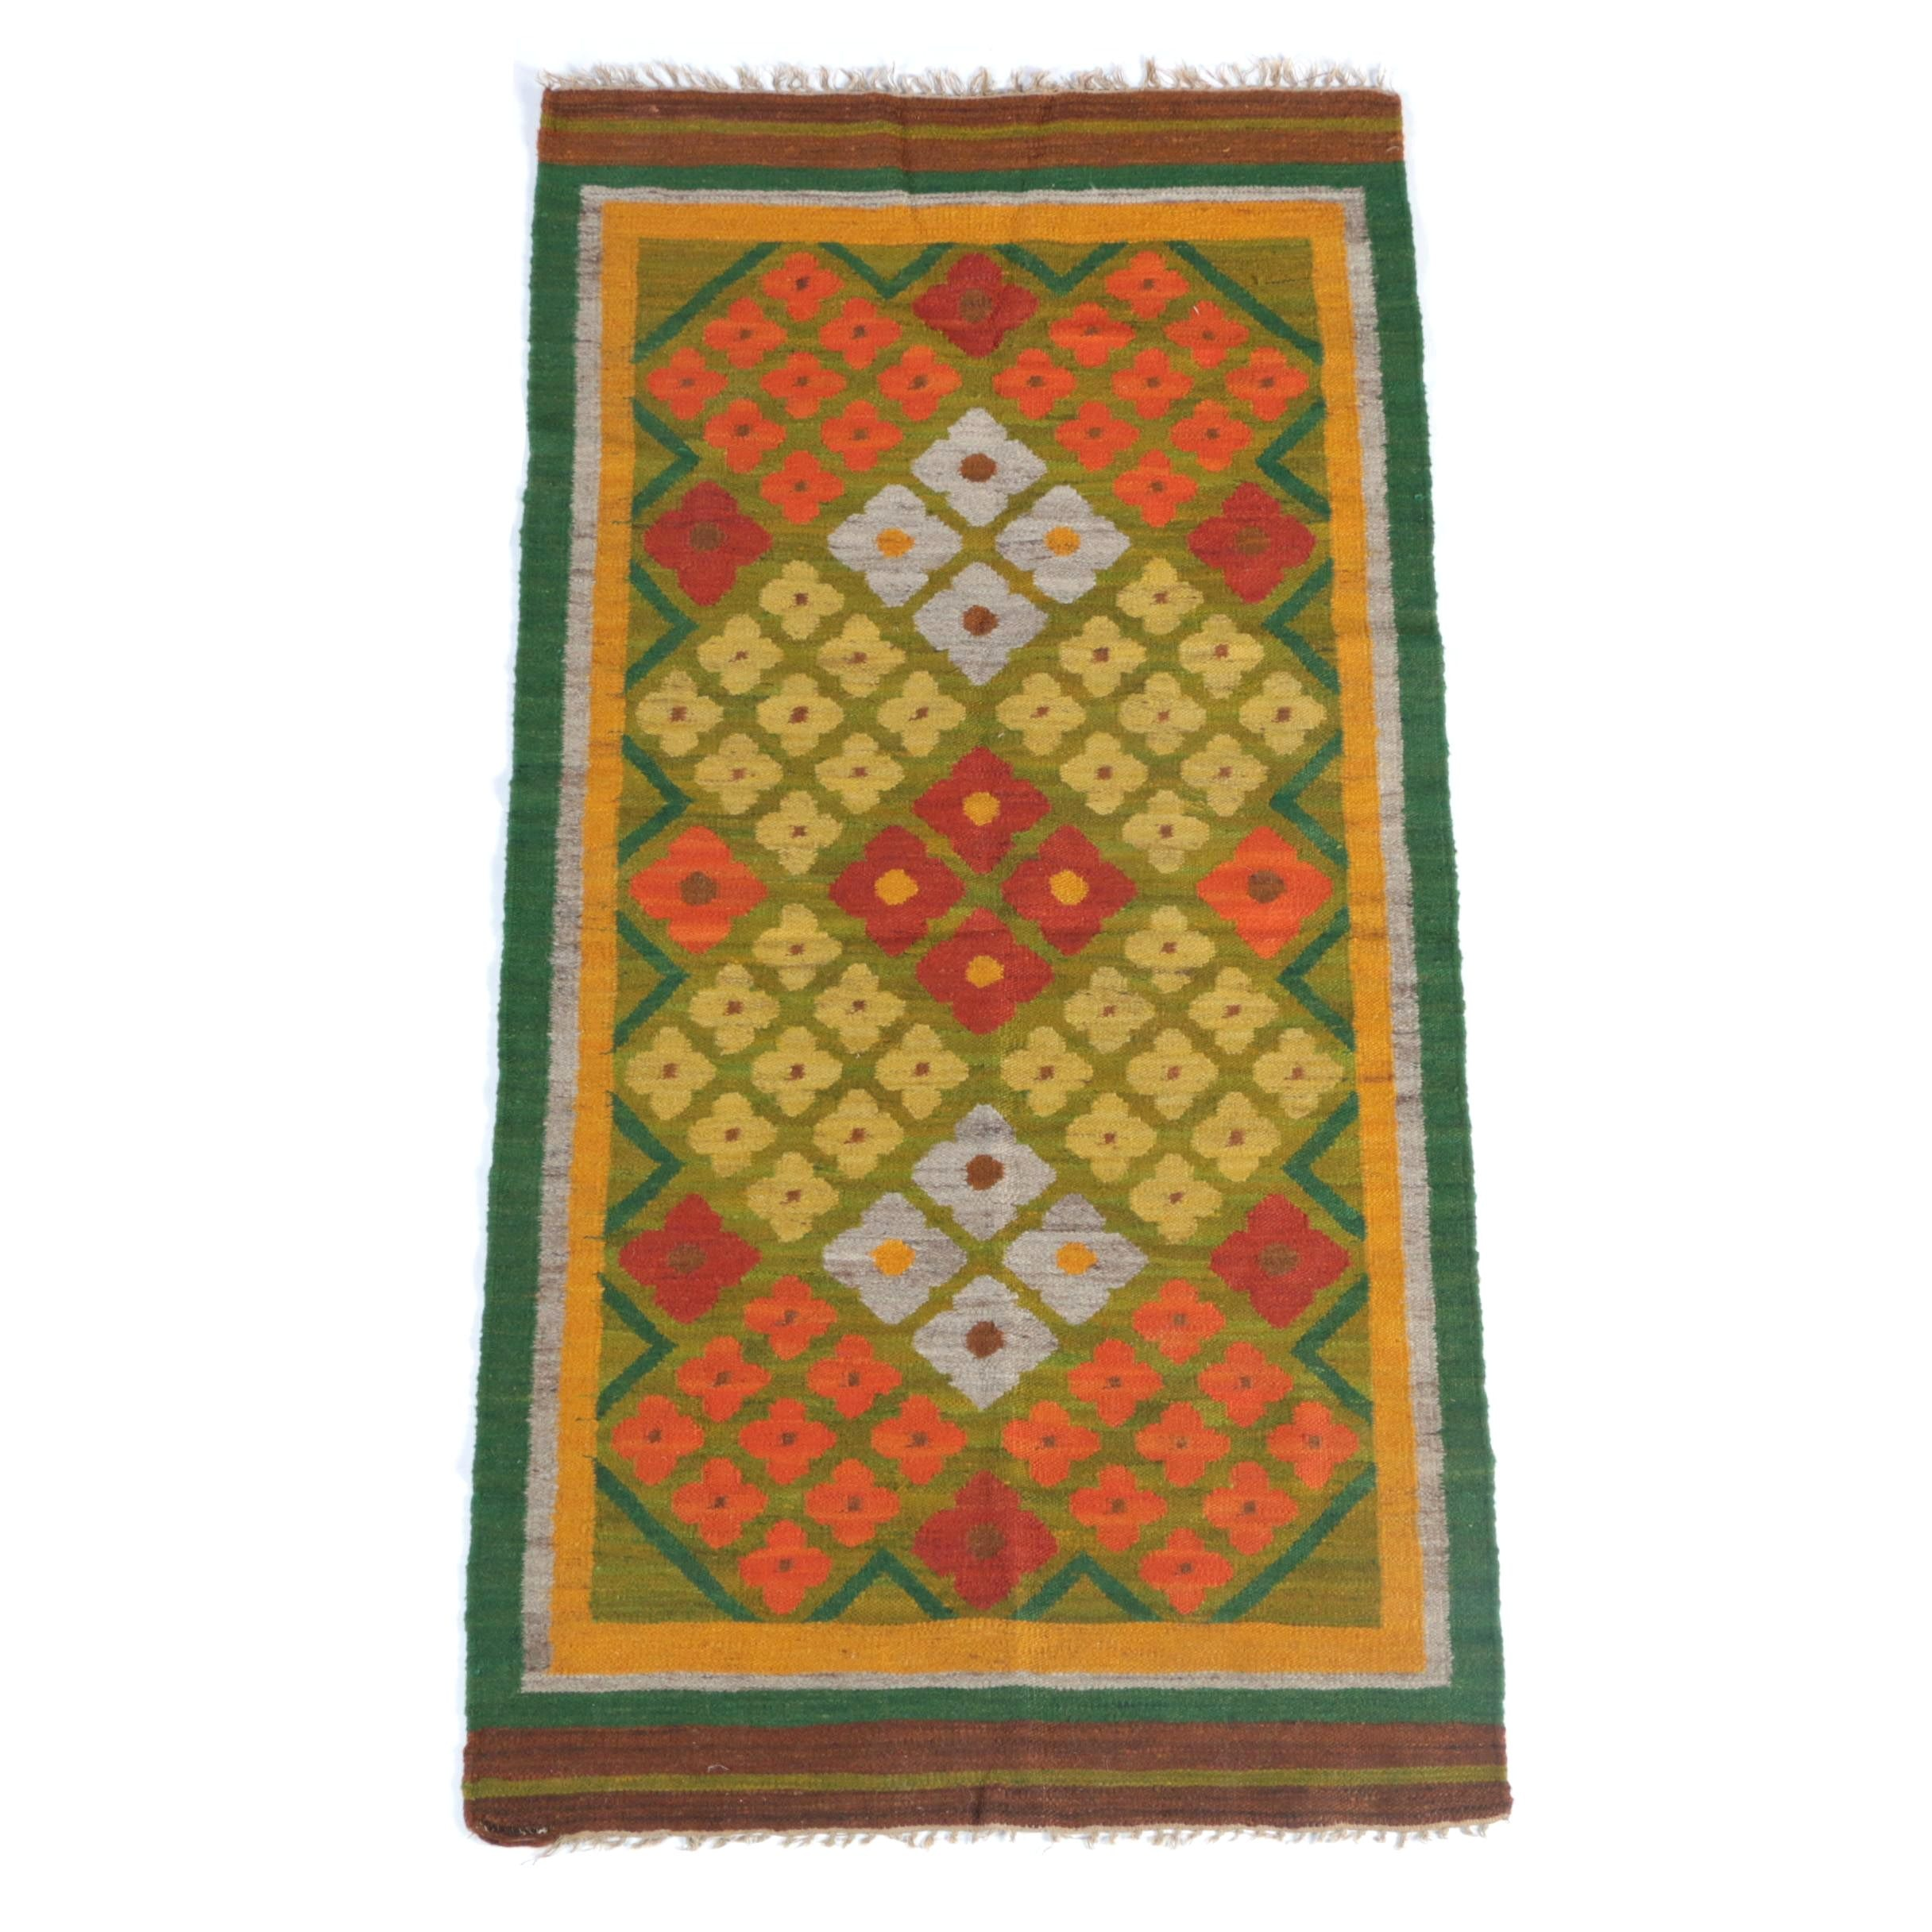 Handwoven Wool Area Kilim